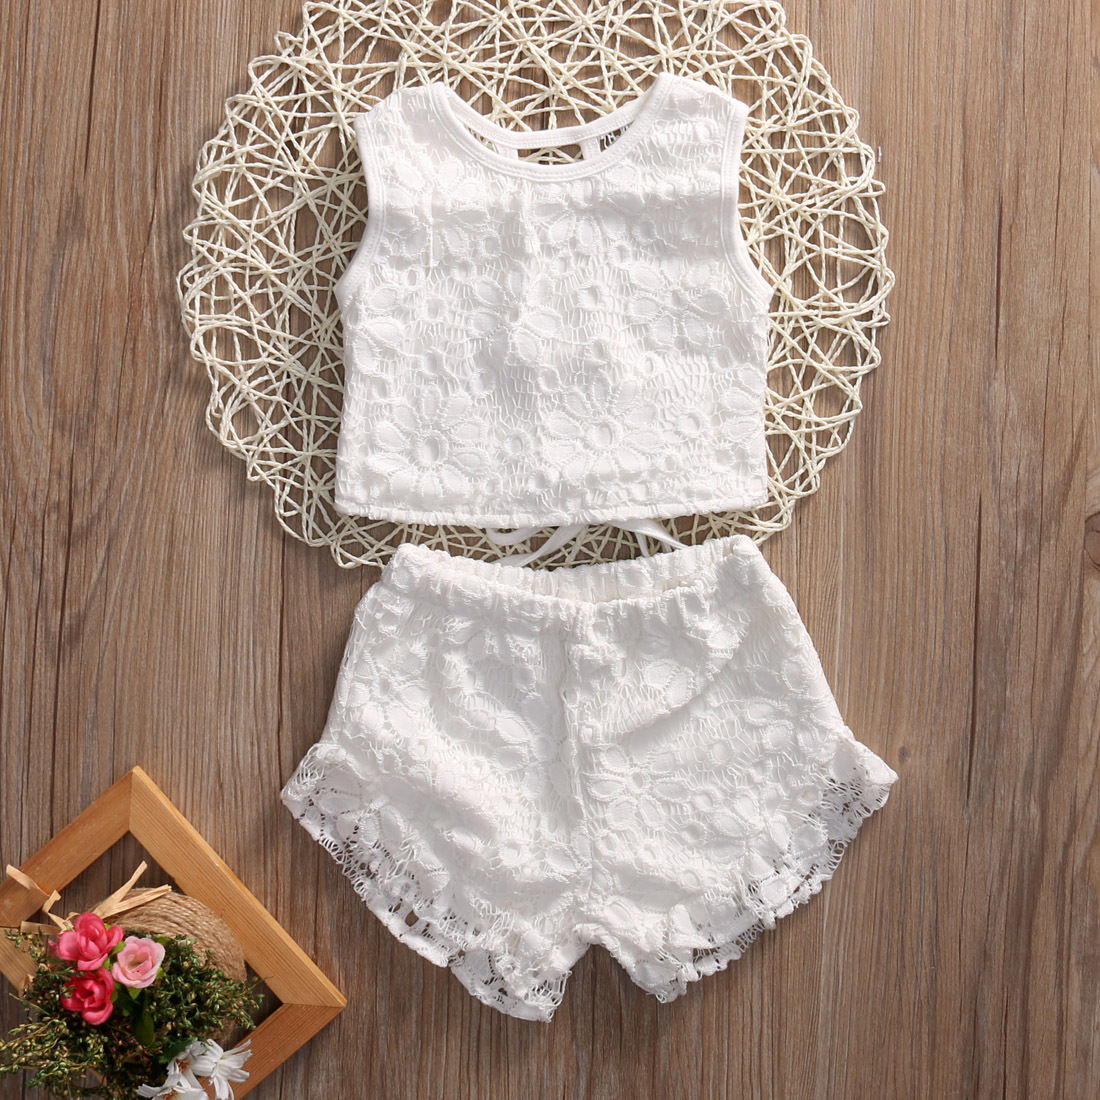 Toddler Baby Girls Clothes Kids Summer Floral Lace Sleeveless Tops Shirt Shorts Outfits Set girl Clothing 2pcs kids baby girls summer outfits lace tops floral shorts pants clothes sets children kid girl cute clothing